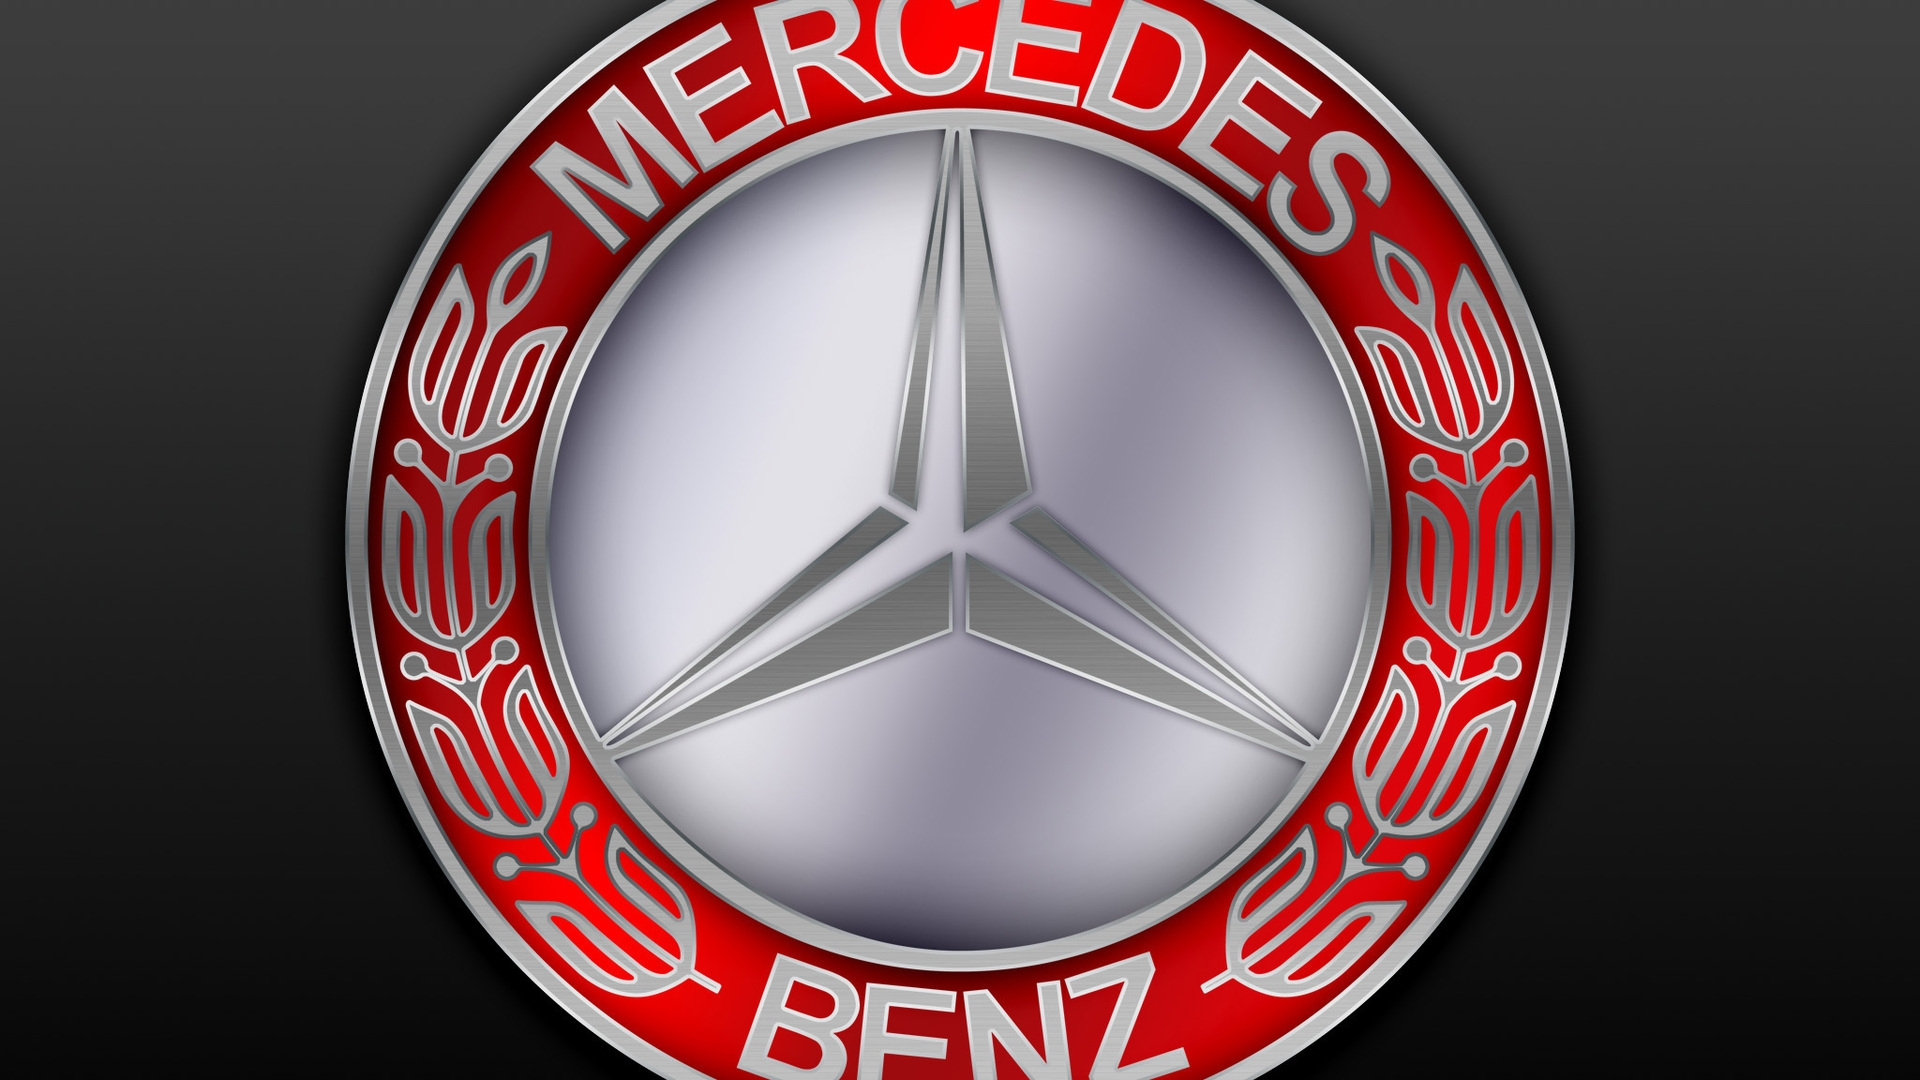 Mercedes Benz Logo HD Wallpaper